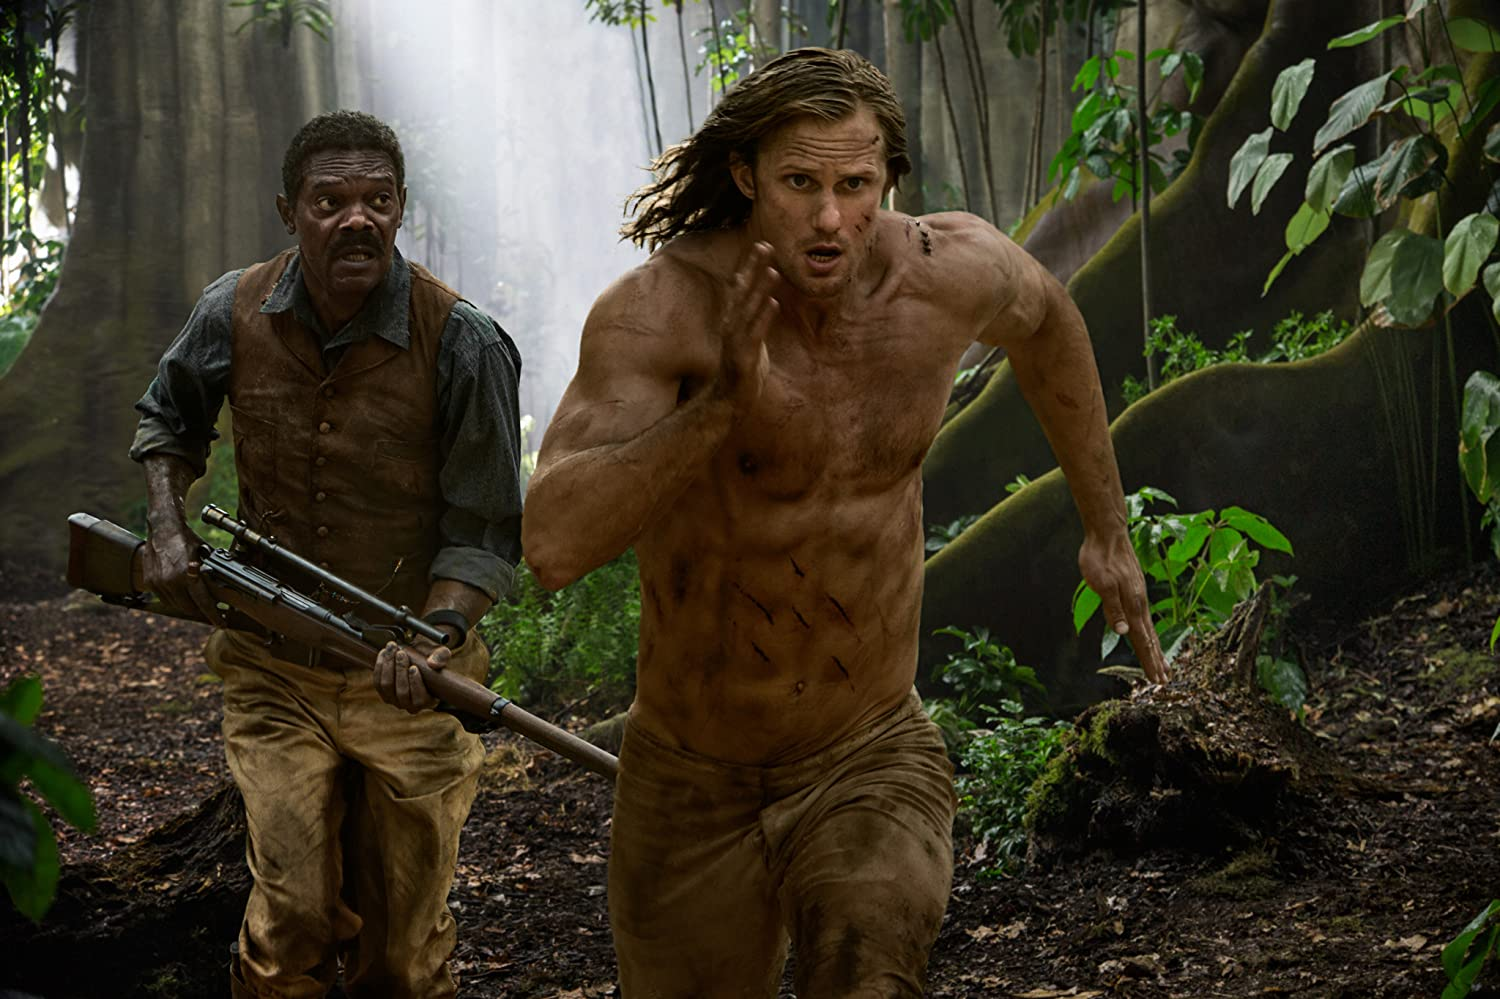 Samuel L. Jackson and Alexander Skarsgård in The Legend of Tarzan (2016)